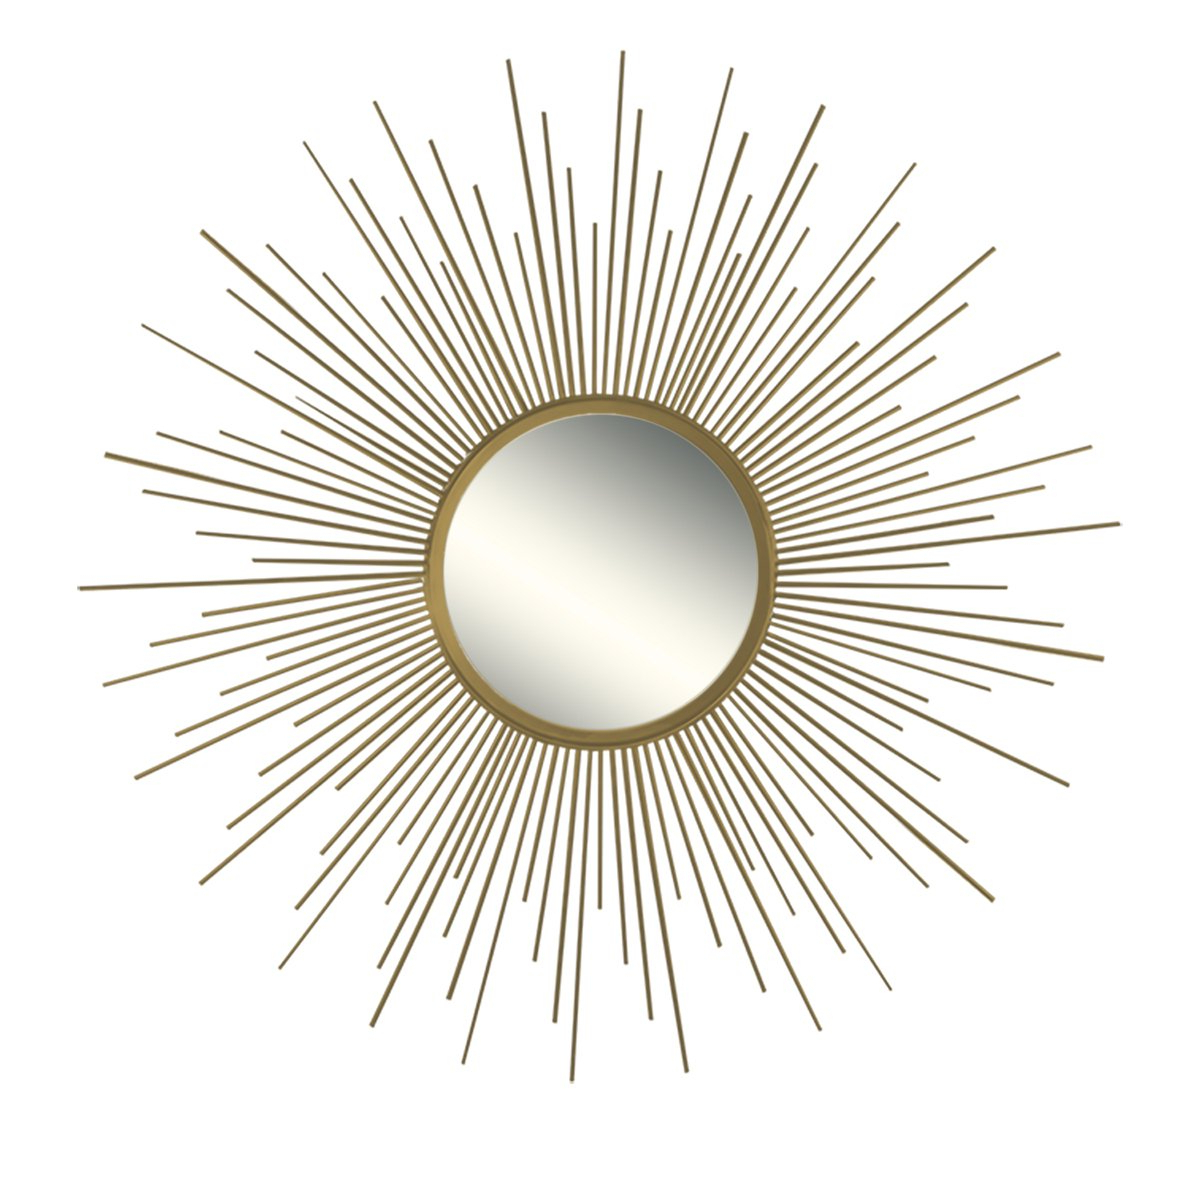 "36"" Decorative Wall Hanging Mirror In Sunburst Shape, Brushed Gold Sunburst  Round Wall Mirror, Mid Century Modern Style Mirror, Brushed Gold Finish Pertaining To Latest Sunburst Wall Mirrors (Gallery 14 of 20)"